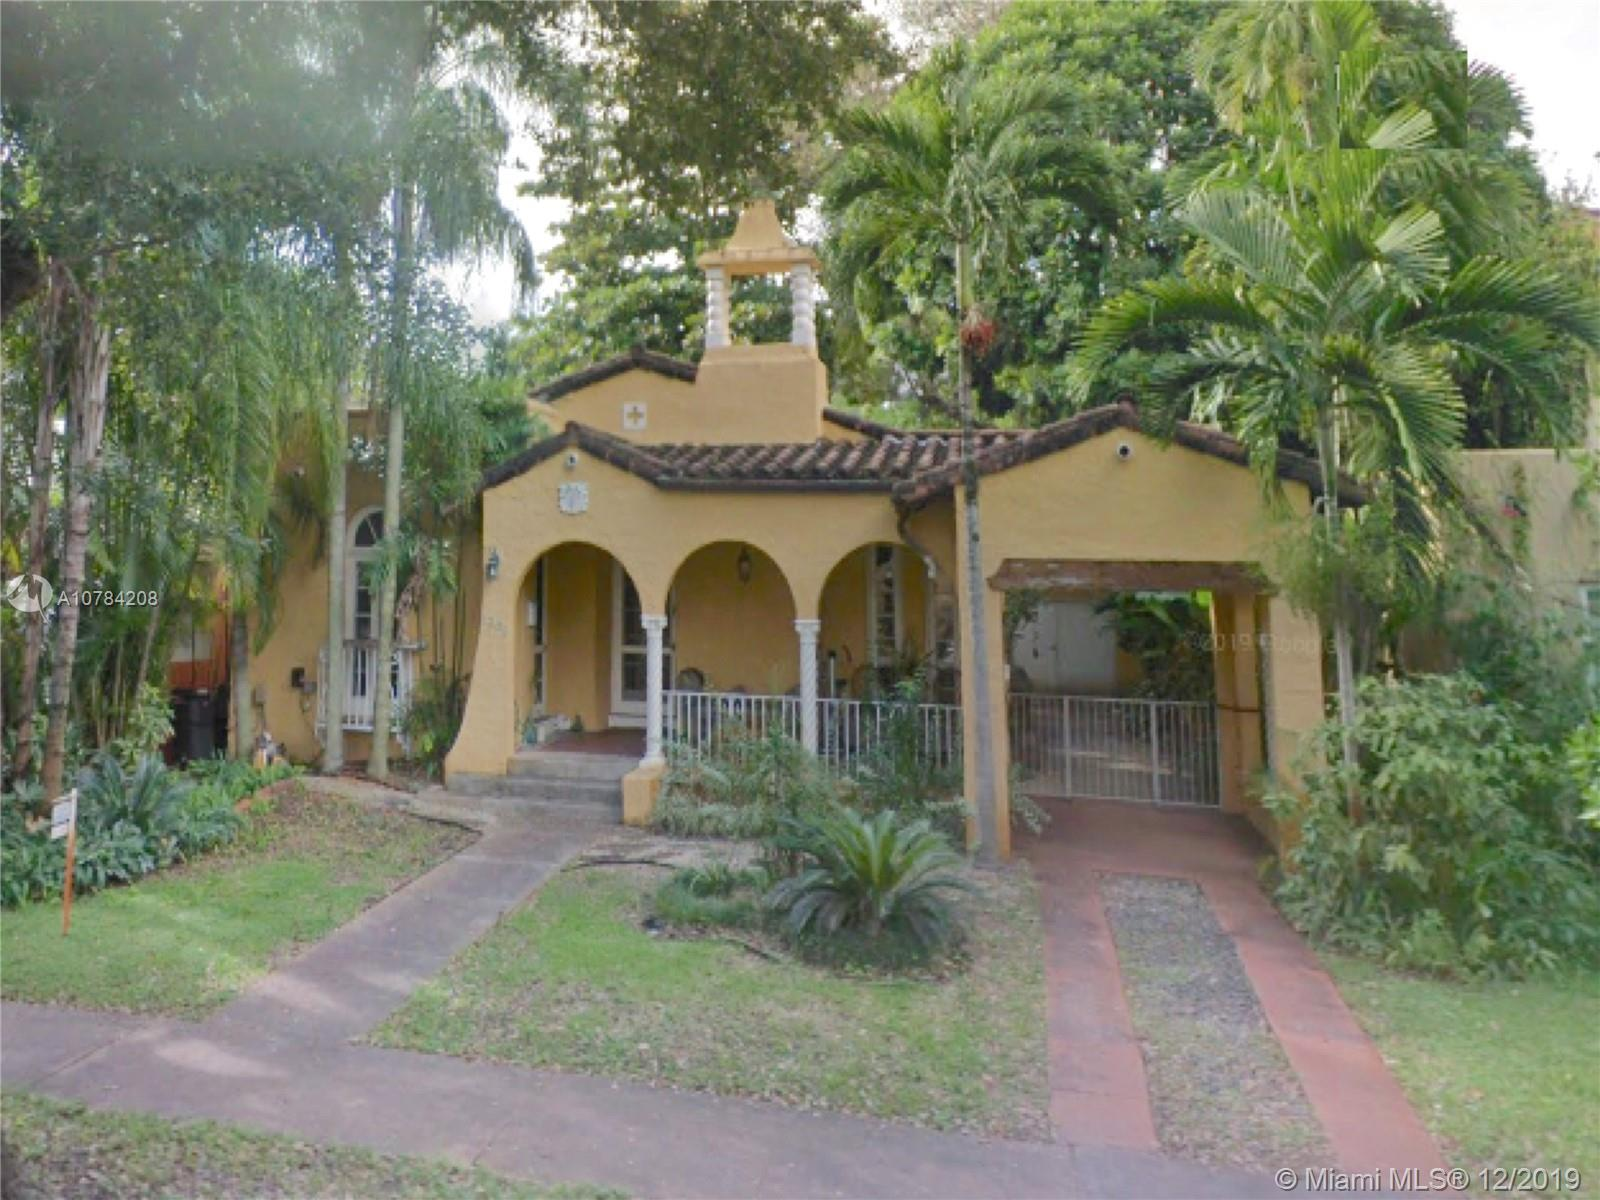 1306  MADRID ST  For Sale A10784208, FL